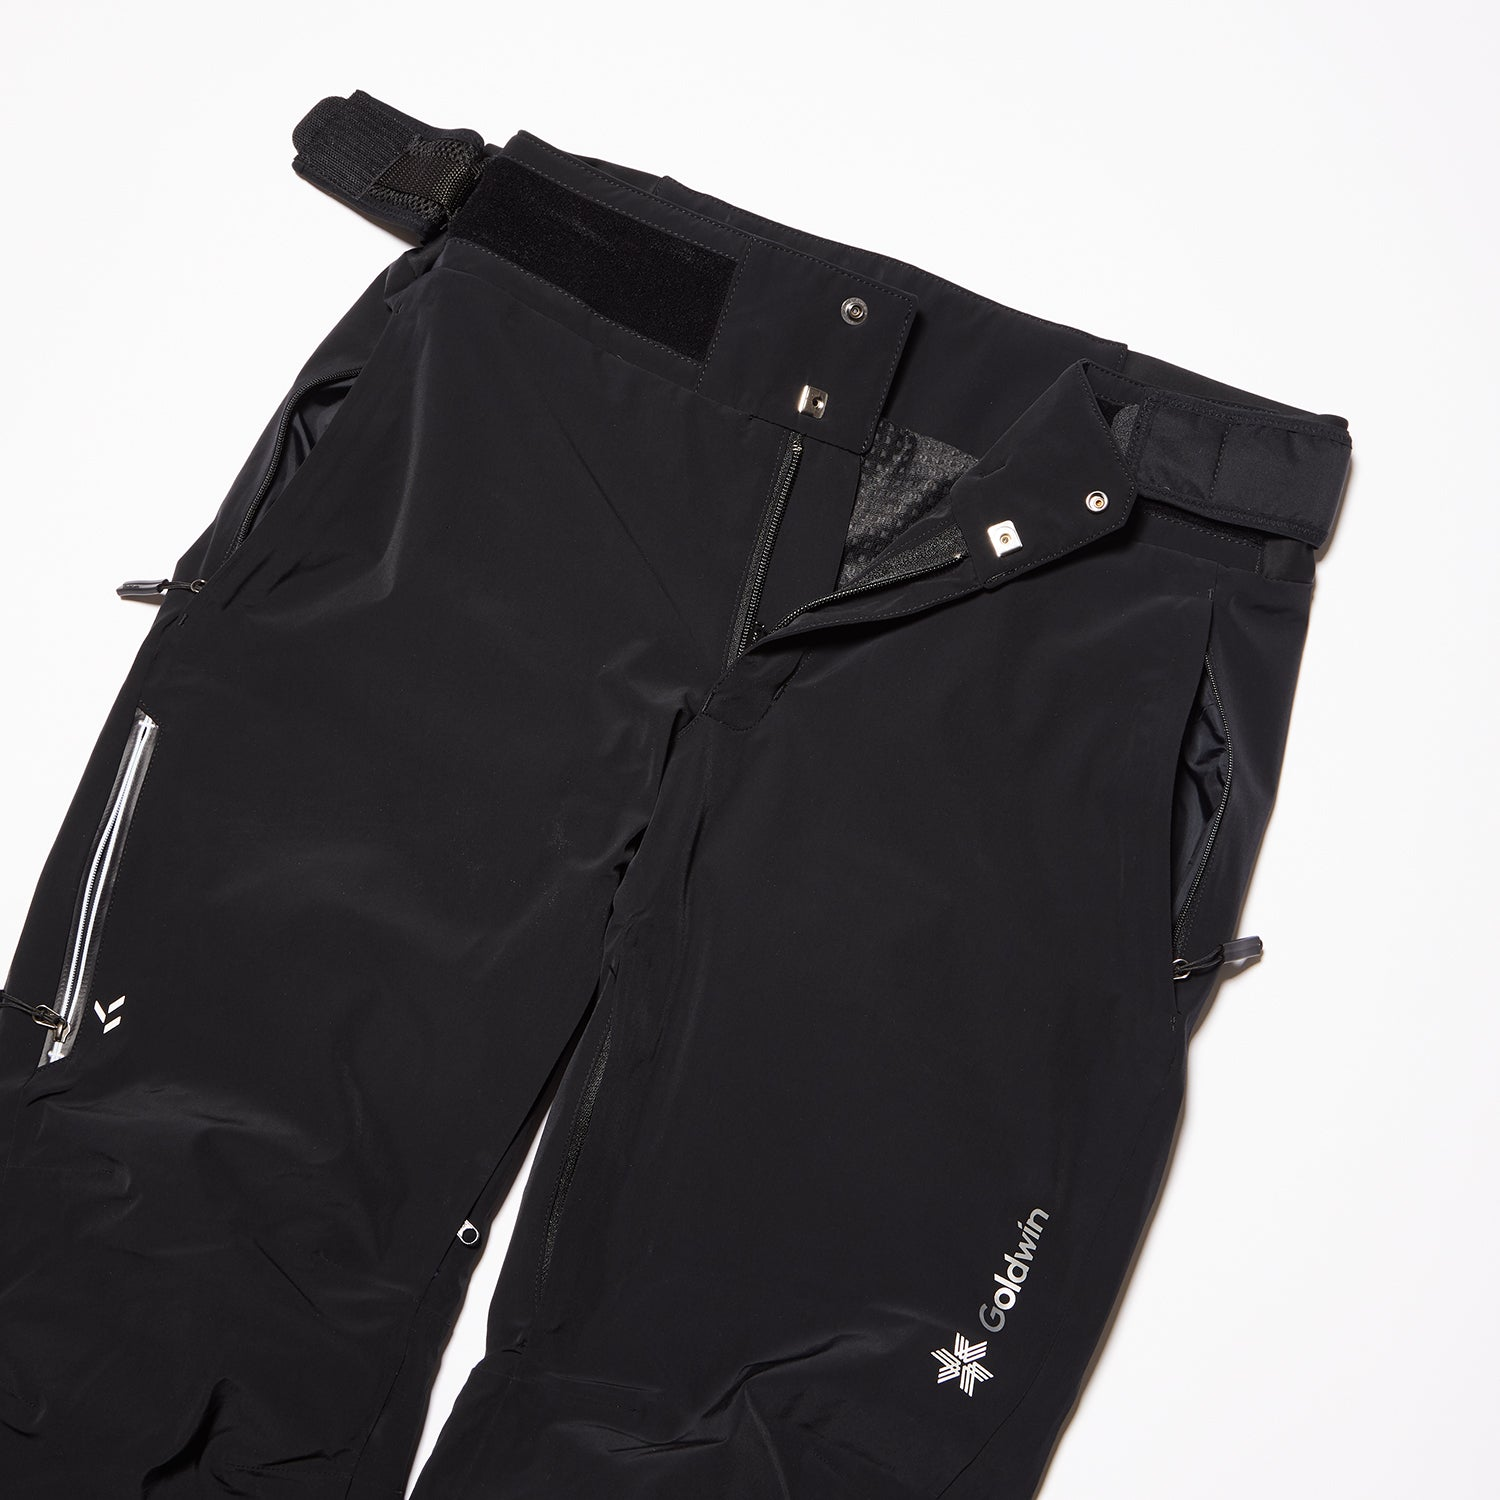 G-BLISS PANTS NAVY